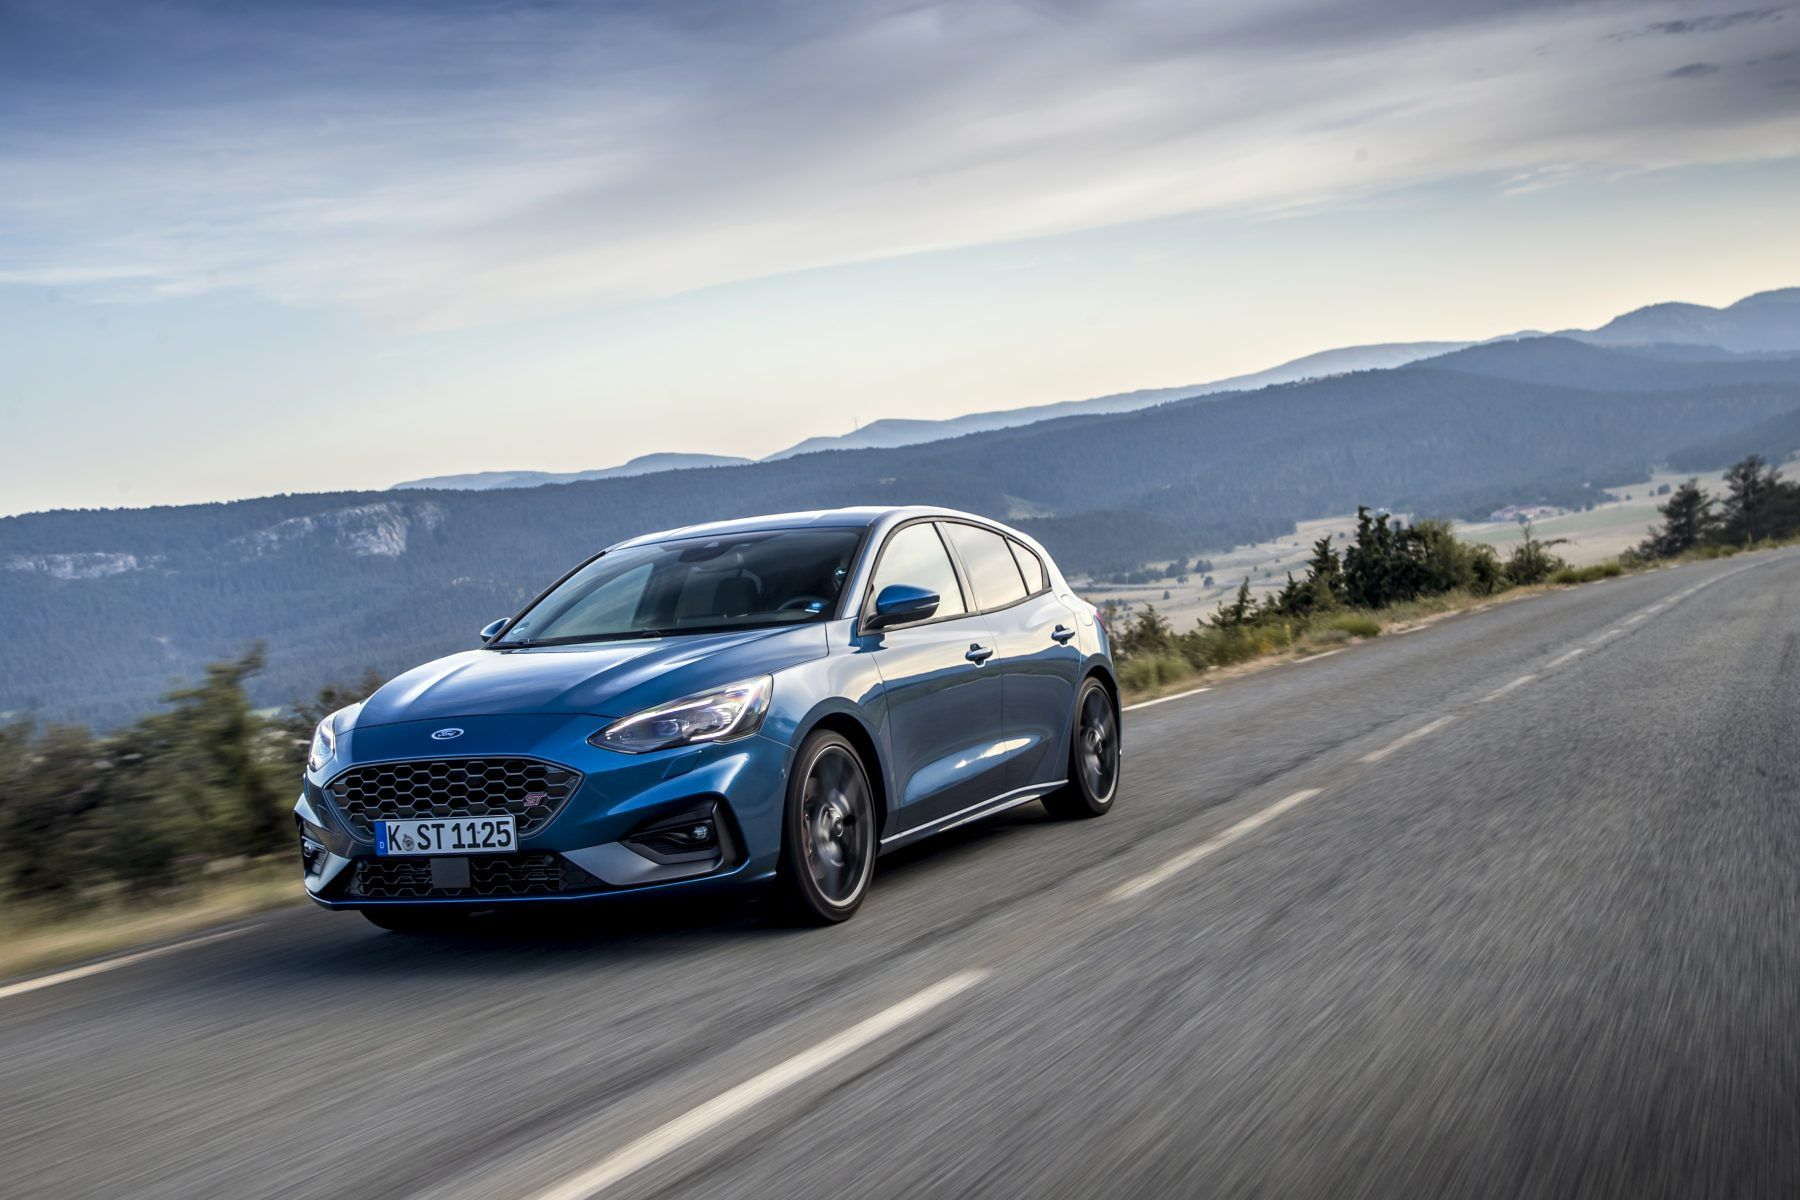 Driven 2020 Ford Focus ST Ford focus, Hatchback cars, Ford